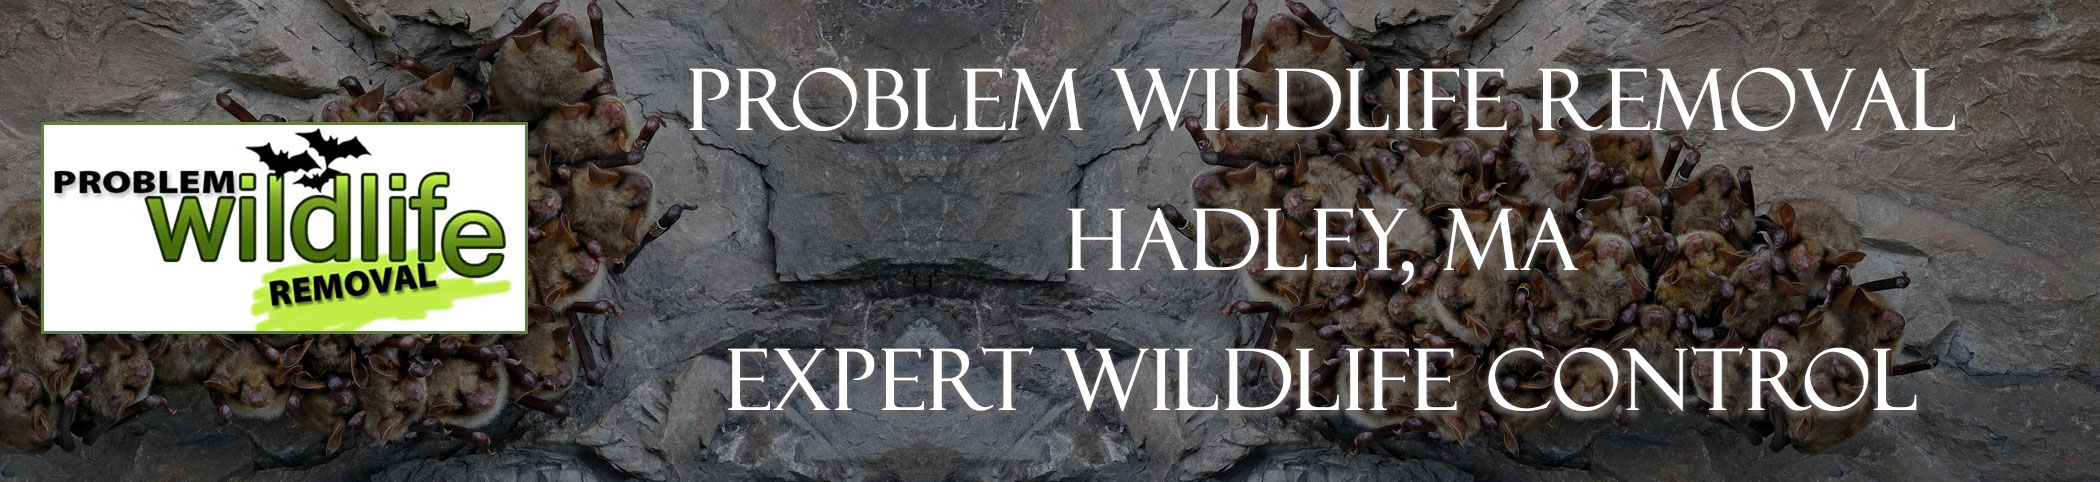 bat removal and bat exclusion by problem wildlife removal Hadley ma